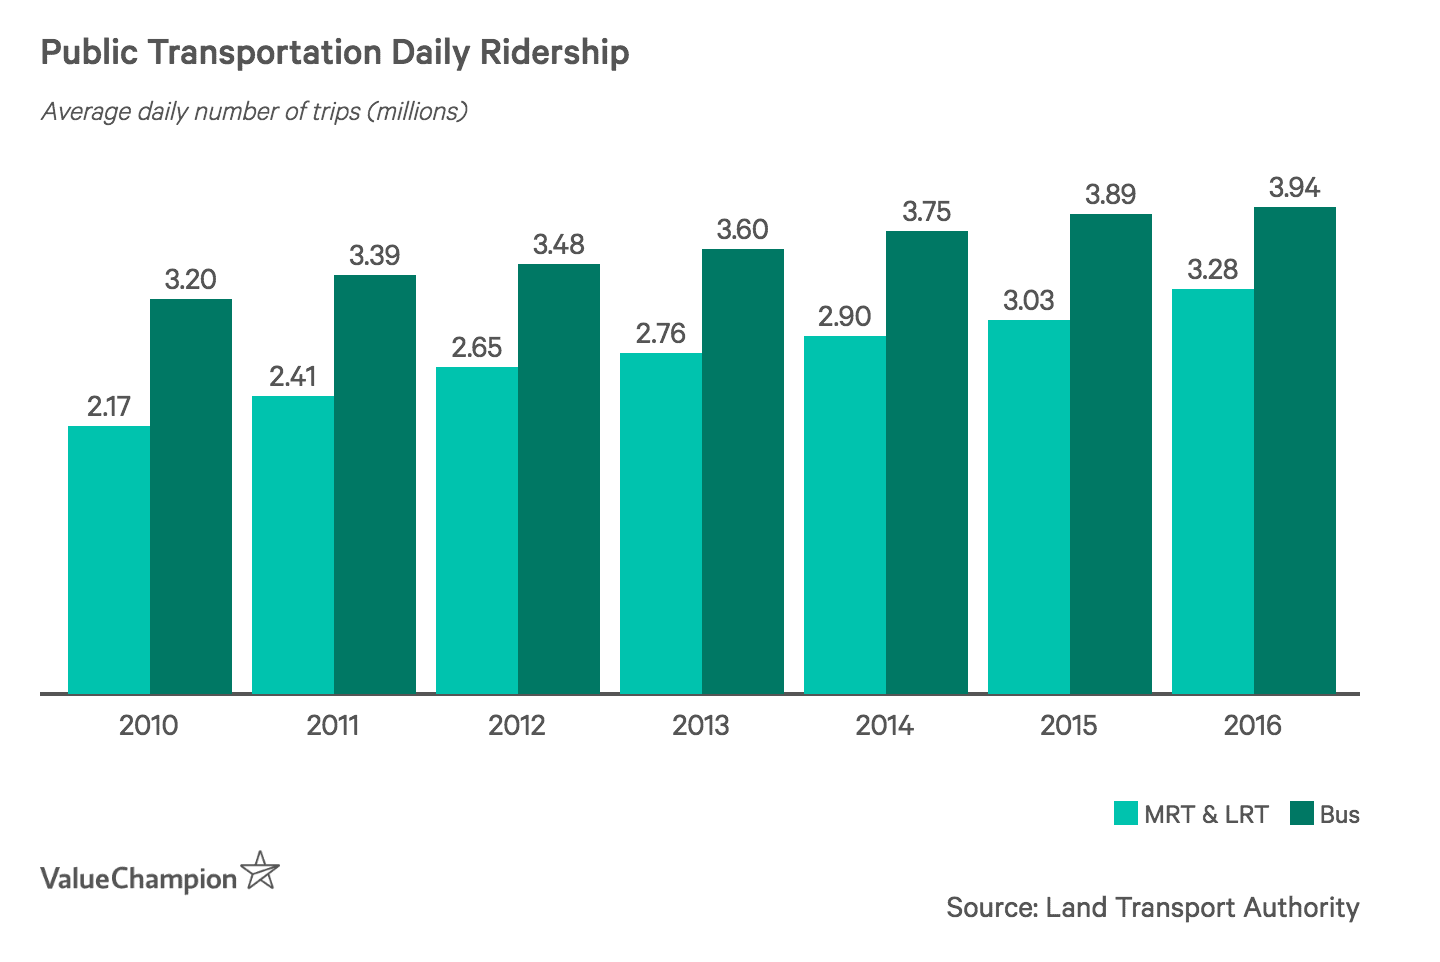 Public Transportation Daily Ridership